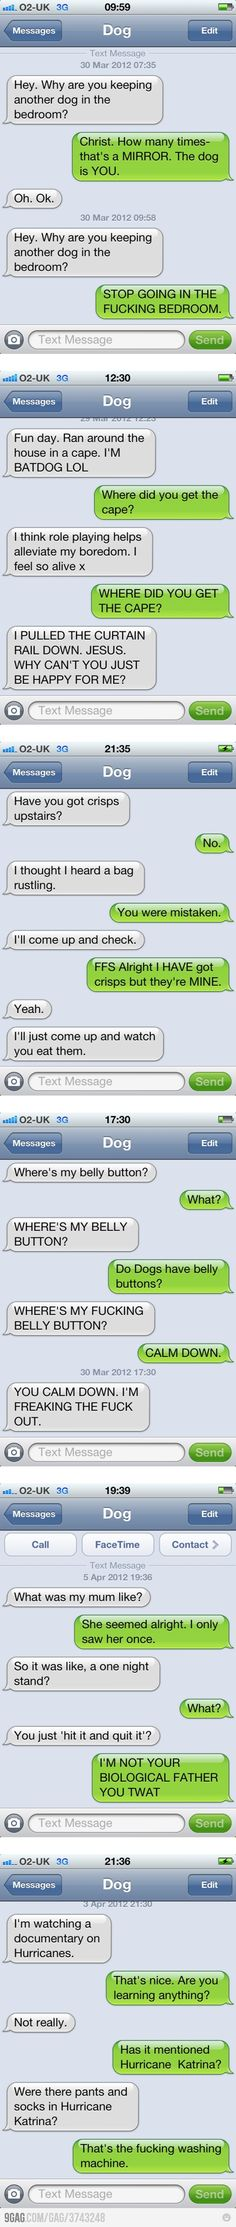 Text message from dog....hahahahaha!